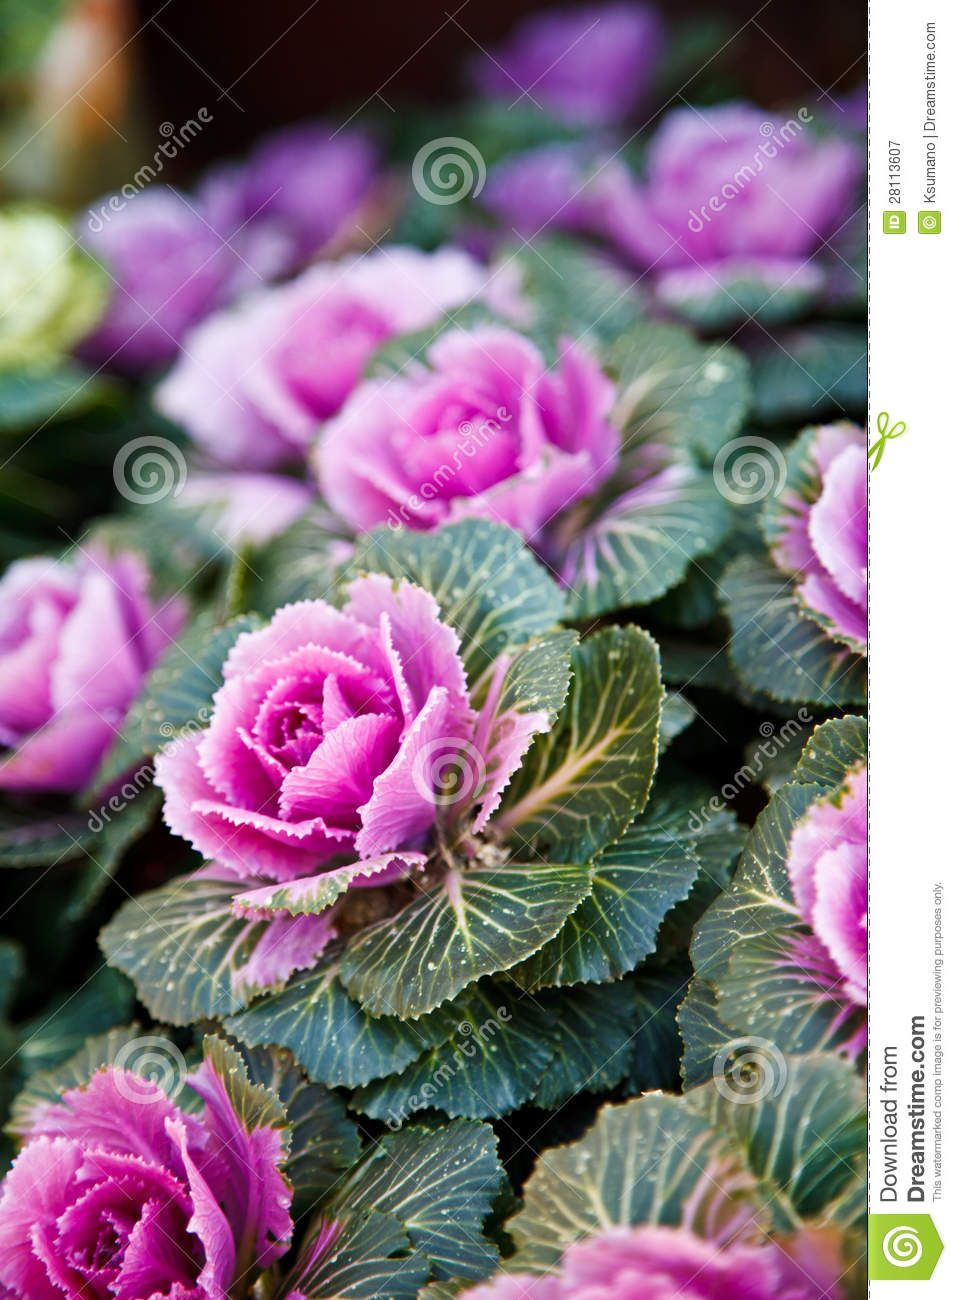 Ornamental Kale Download From Over 68 Million High Quality Stock Photos Images Vectors Sign Up For Free Today I Ornamental Kale Beautiful Flowers Flowers